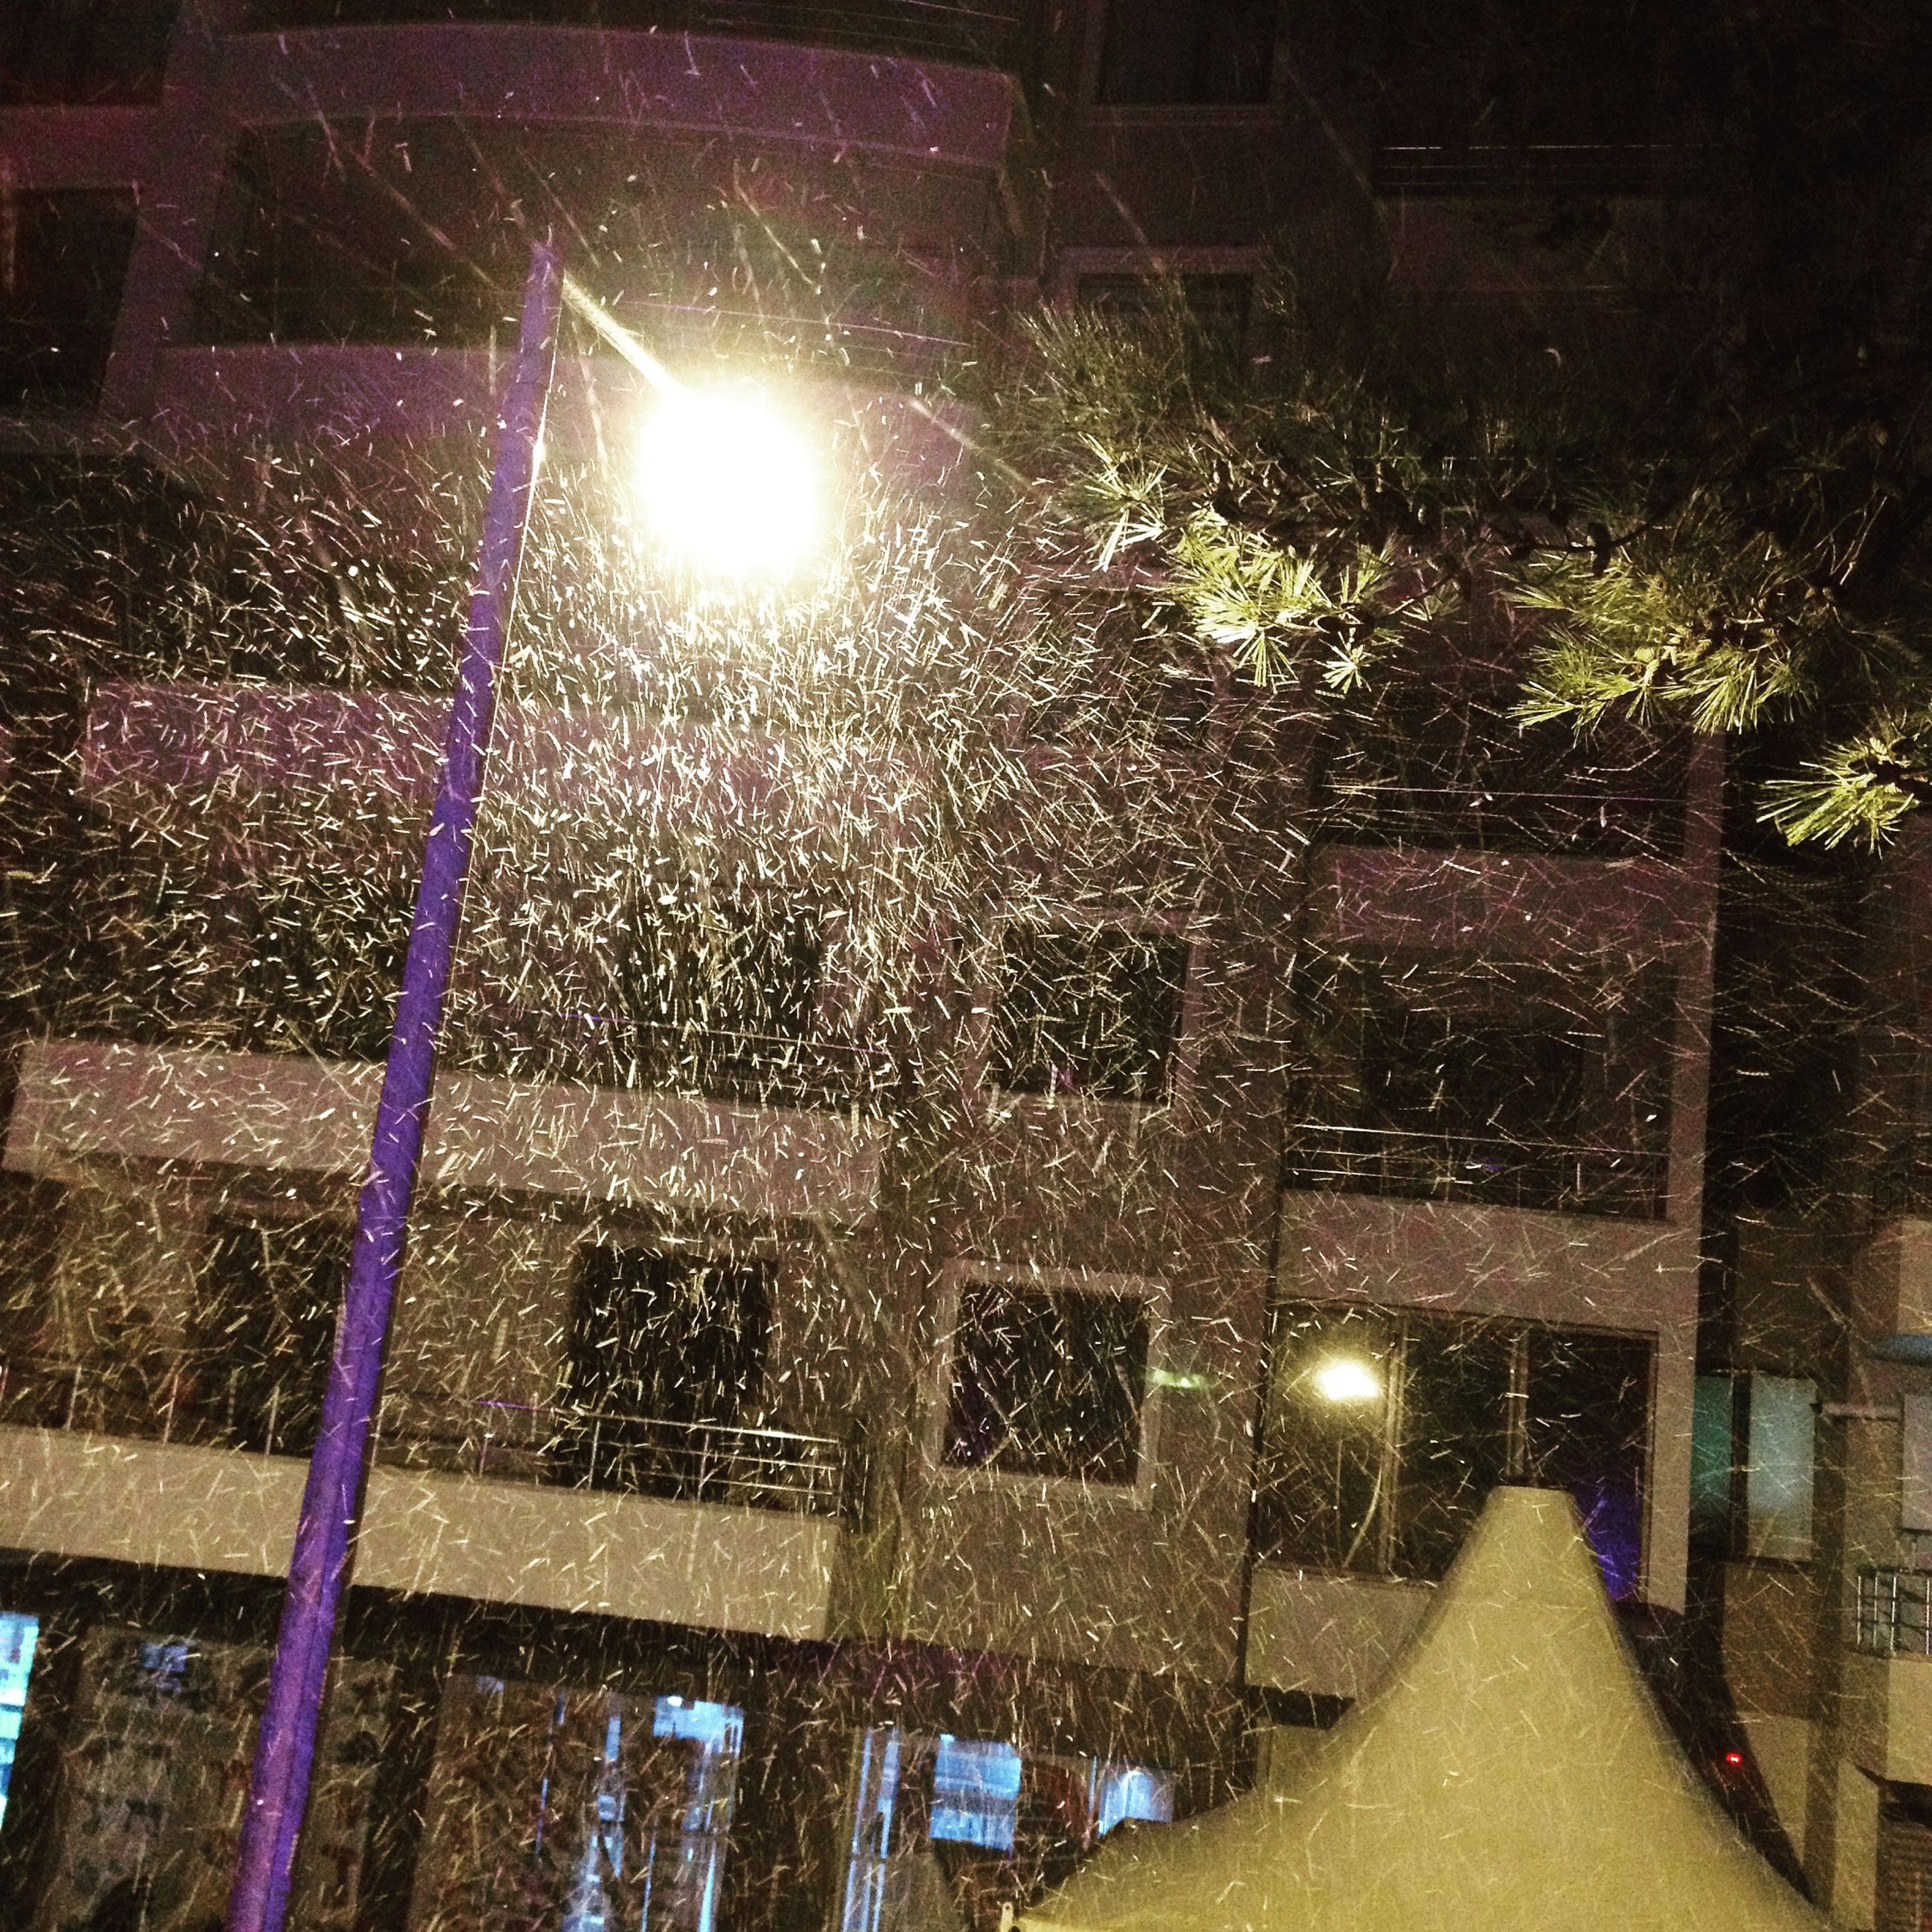 season, cold temperature, snow, winter, weather, wet, illuminated, window, rain, night, glass - material, drop, transparent, transportation, built structure, indoors, raindrop, street light, architecture, water